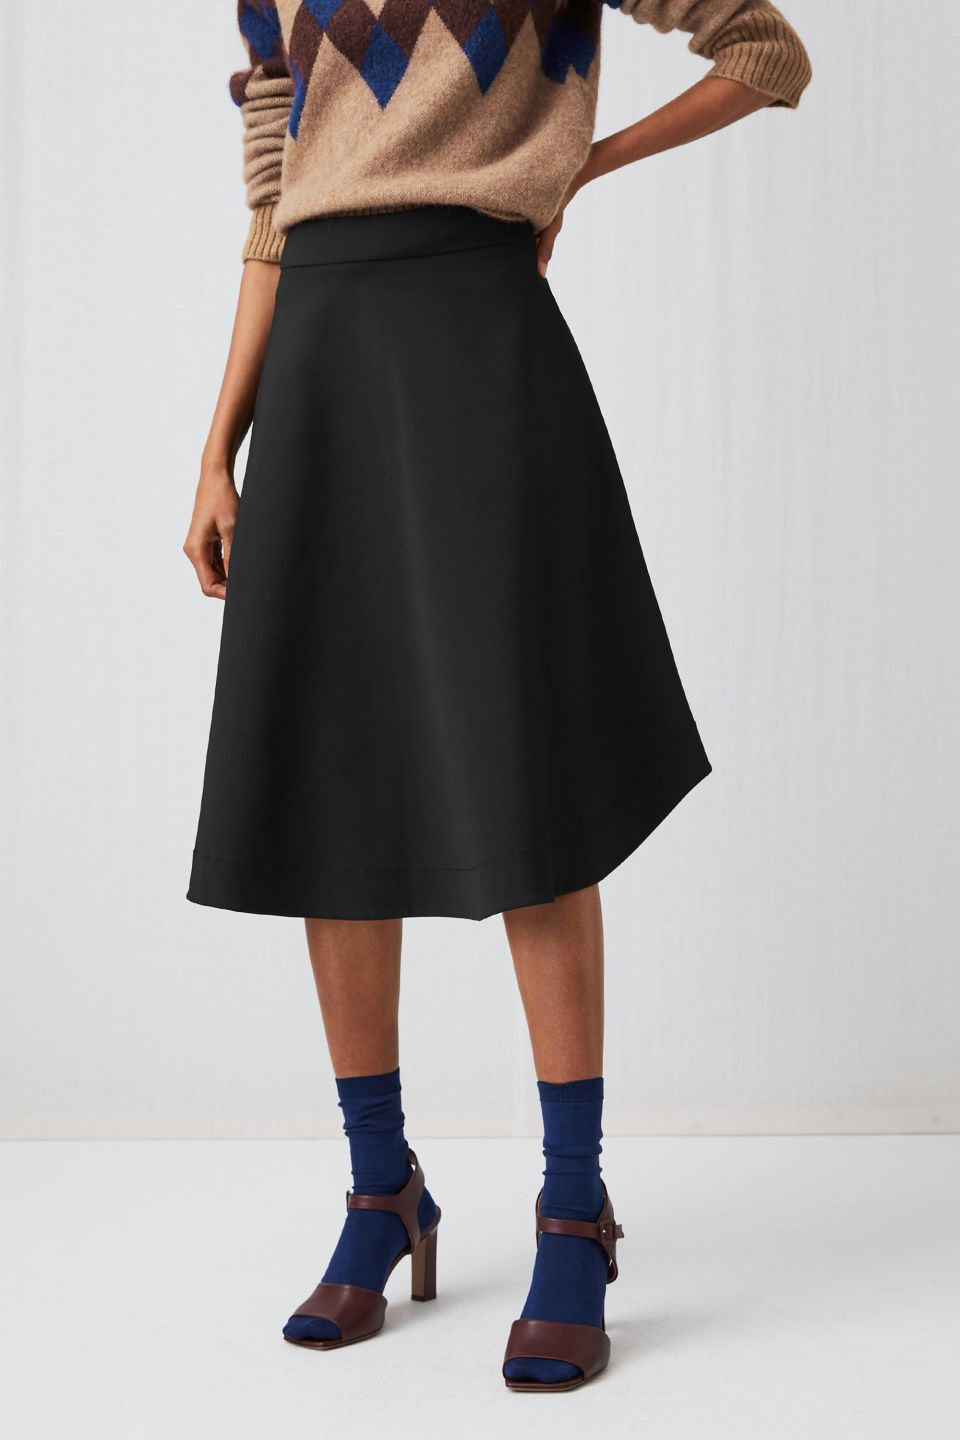 0f648d3bd752 Heavy Cotton A-line Skirt | Perfect black skirt | Skirts, A line ...